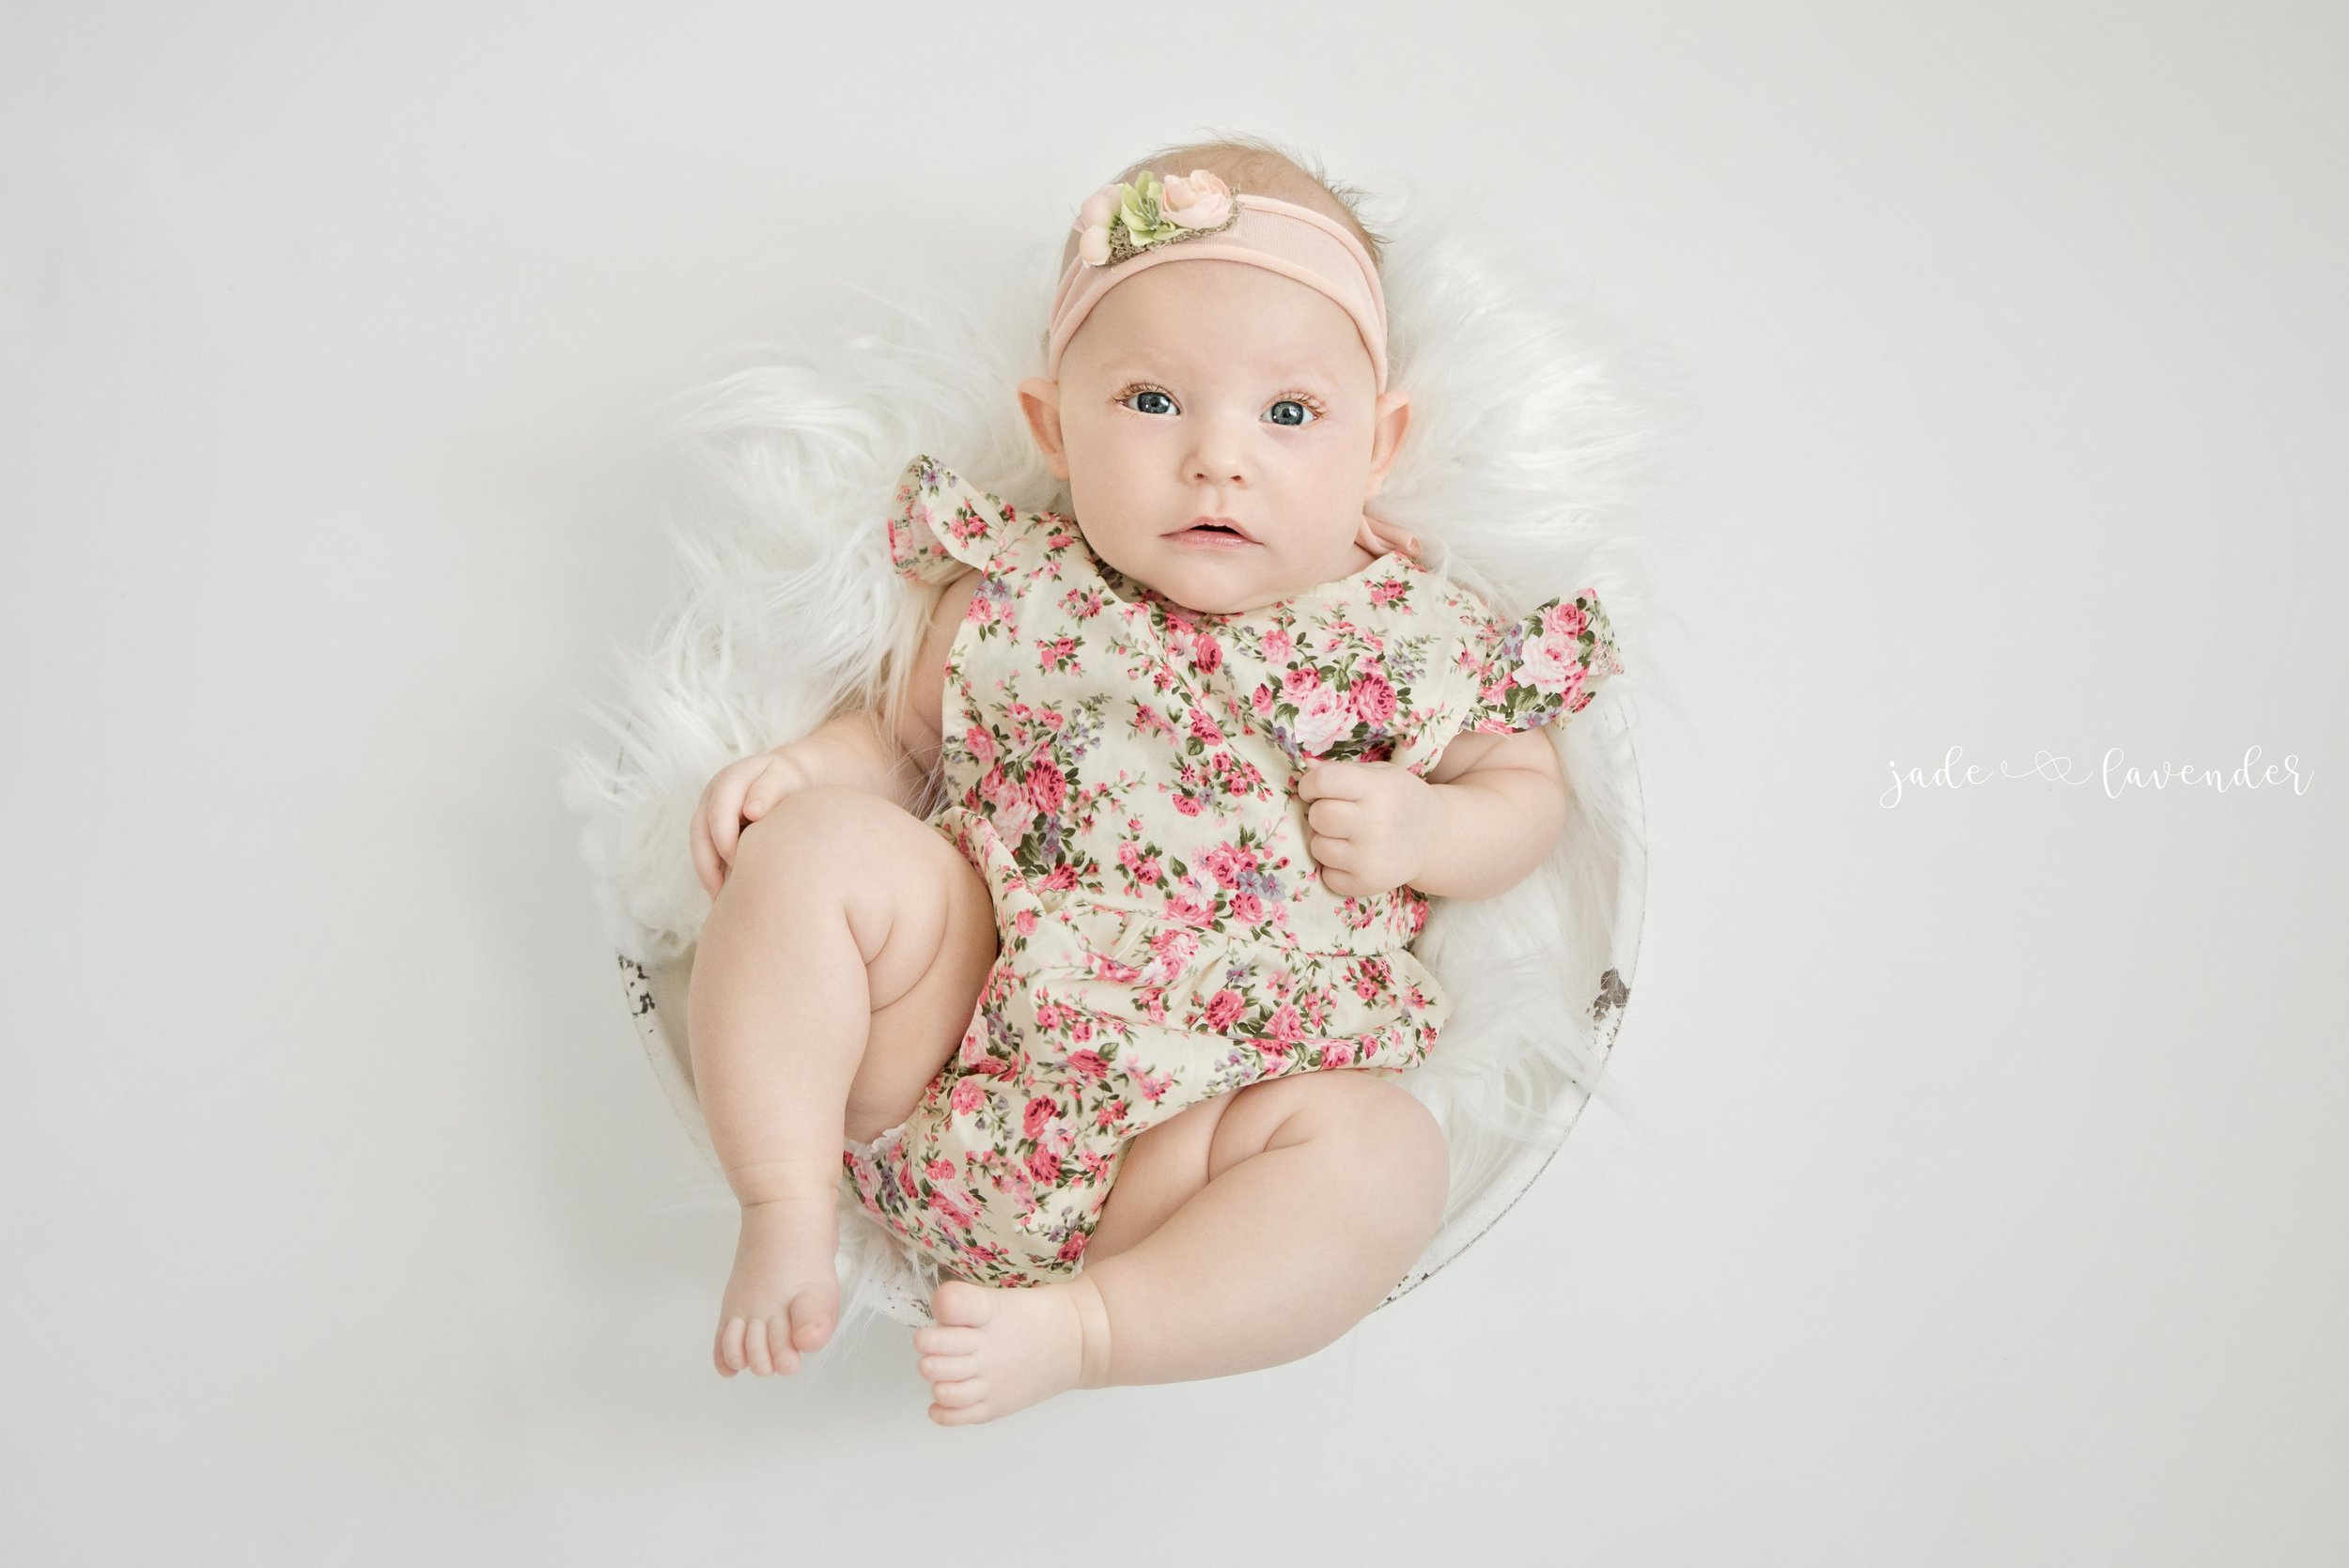 baby-photography-infant-photos-cute-images.jpg